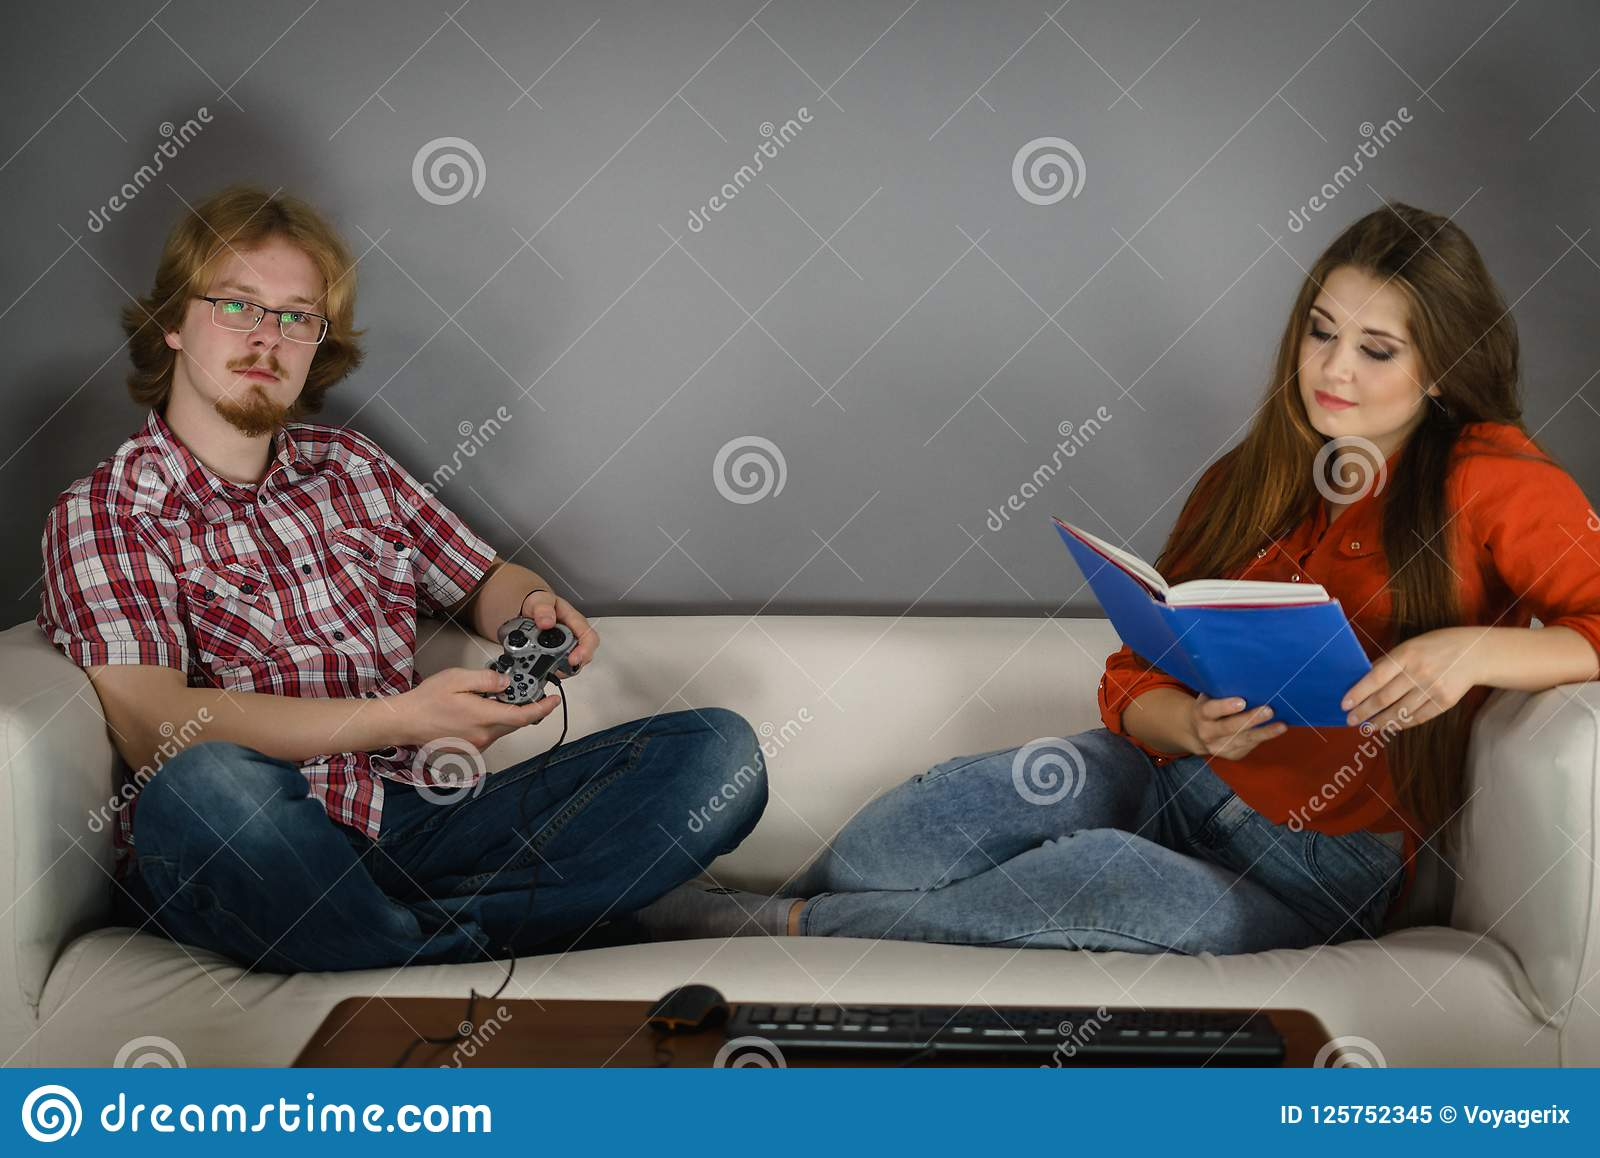 Couple Sitting On Couch Spending Free Time Man Playing Video Games And Women Reading Book